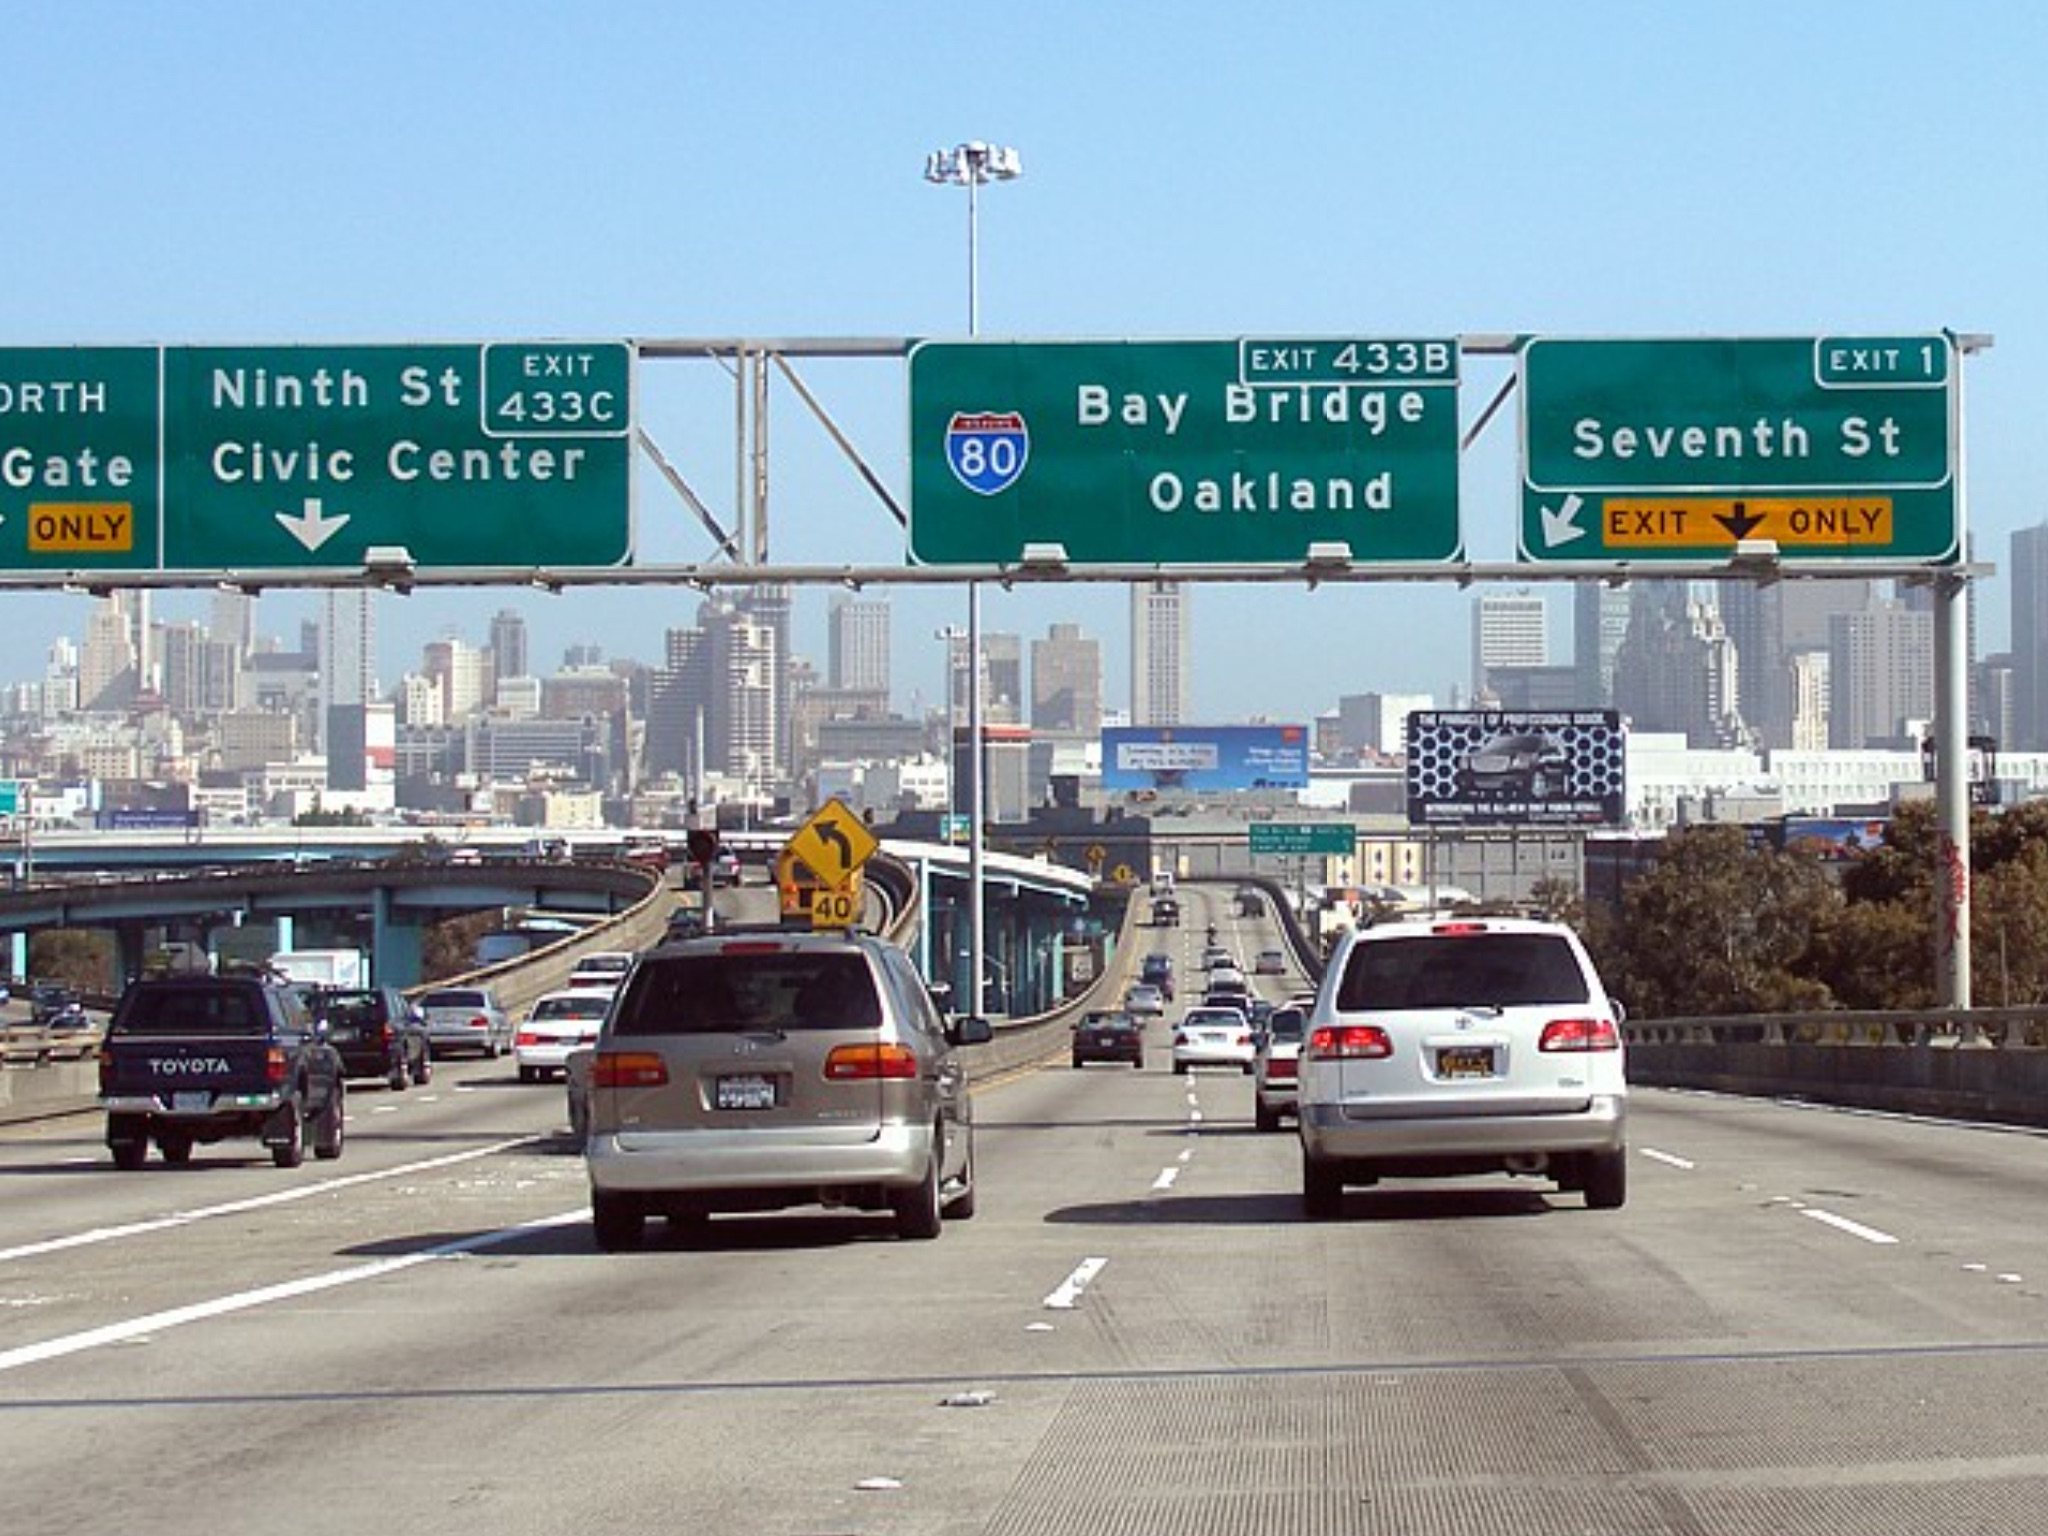 Highway I-80 Archives - San Francisco News